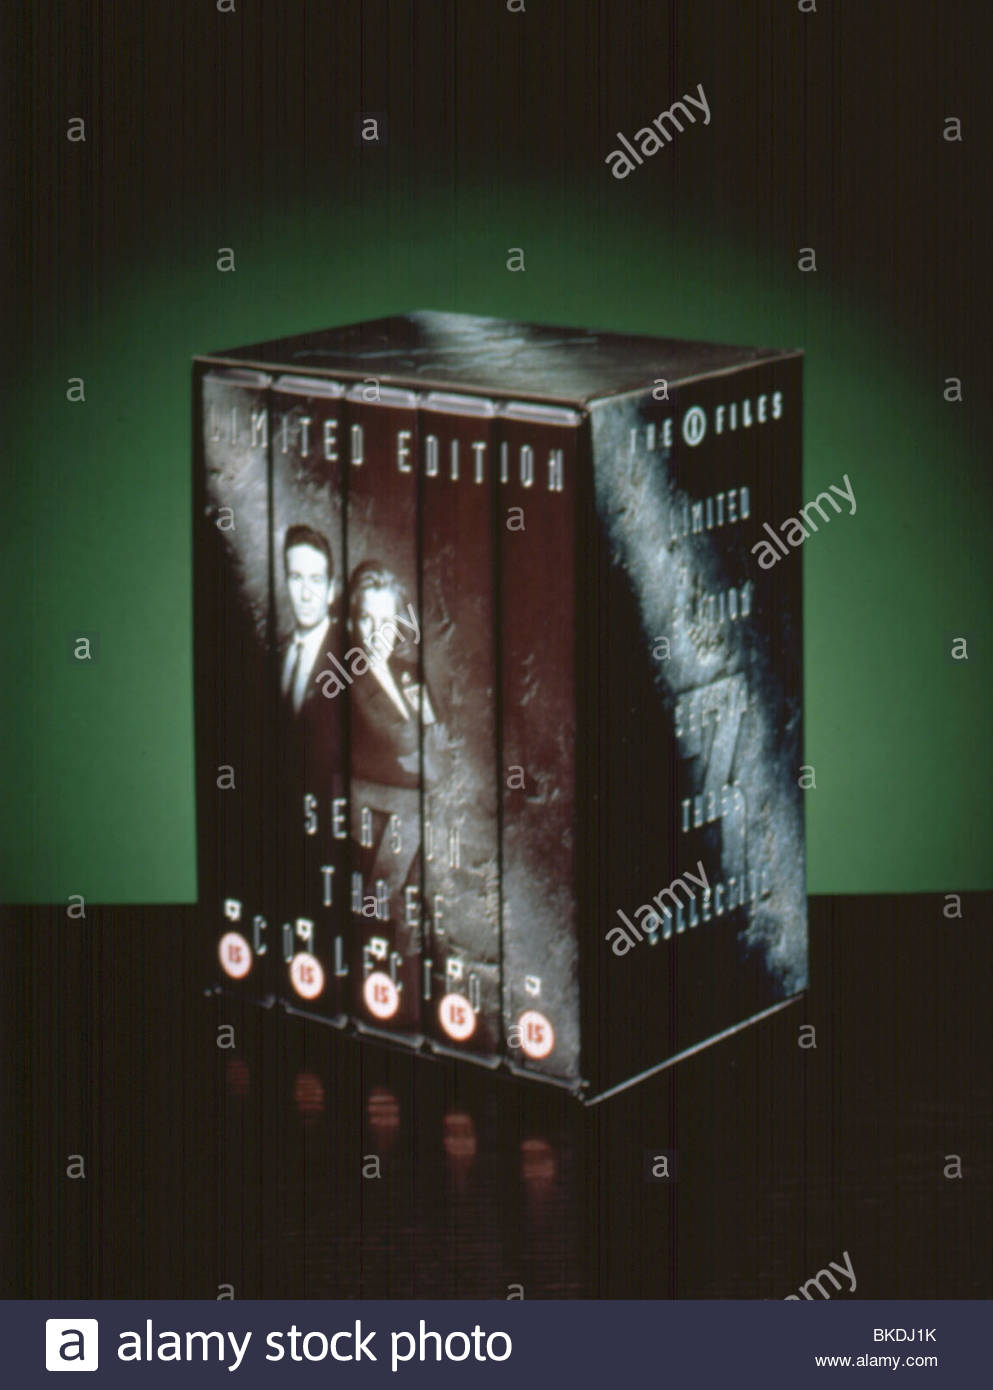 THE X-FILES (TV) MERCHANDISE BOX SET MERH 021 - Stock Image